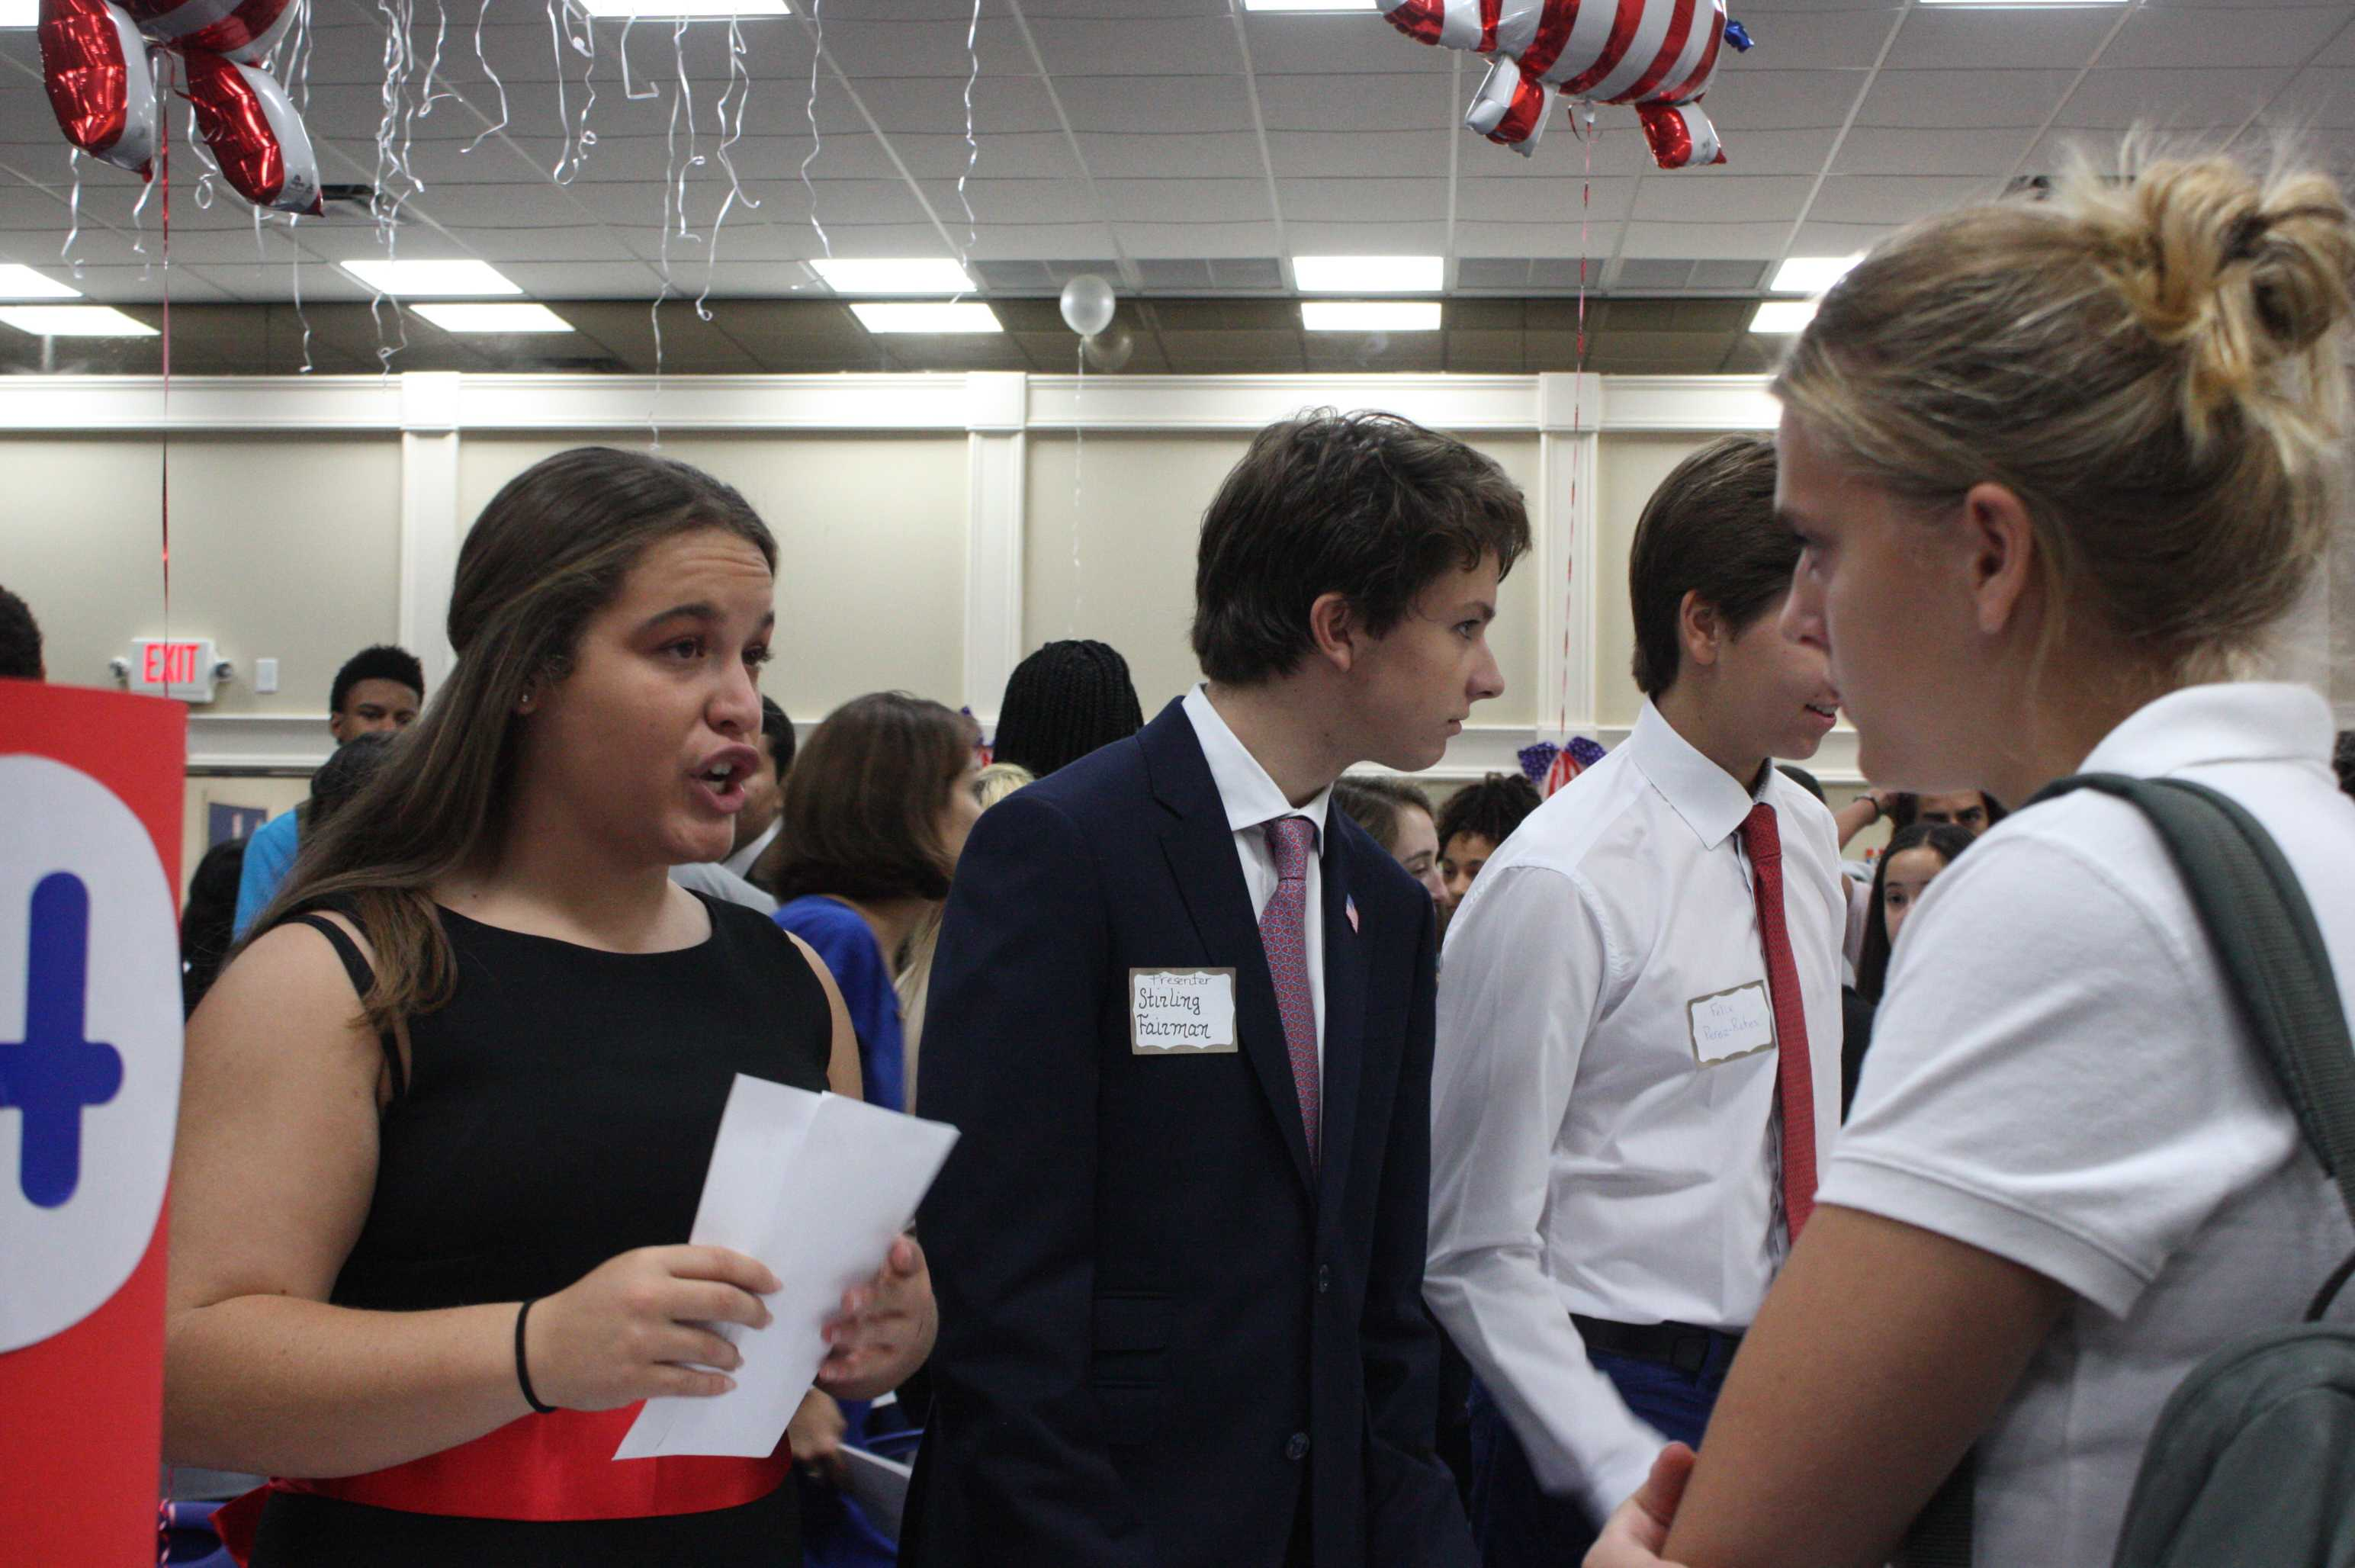 Miller Drive Holds Schoolwide Election Summit